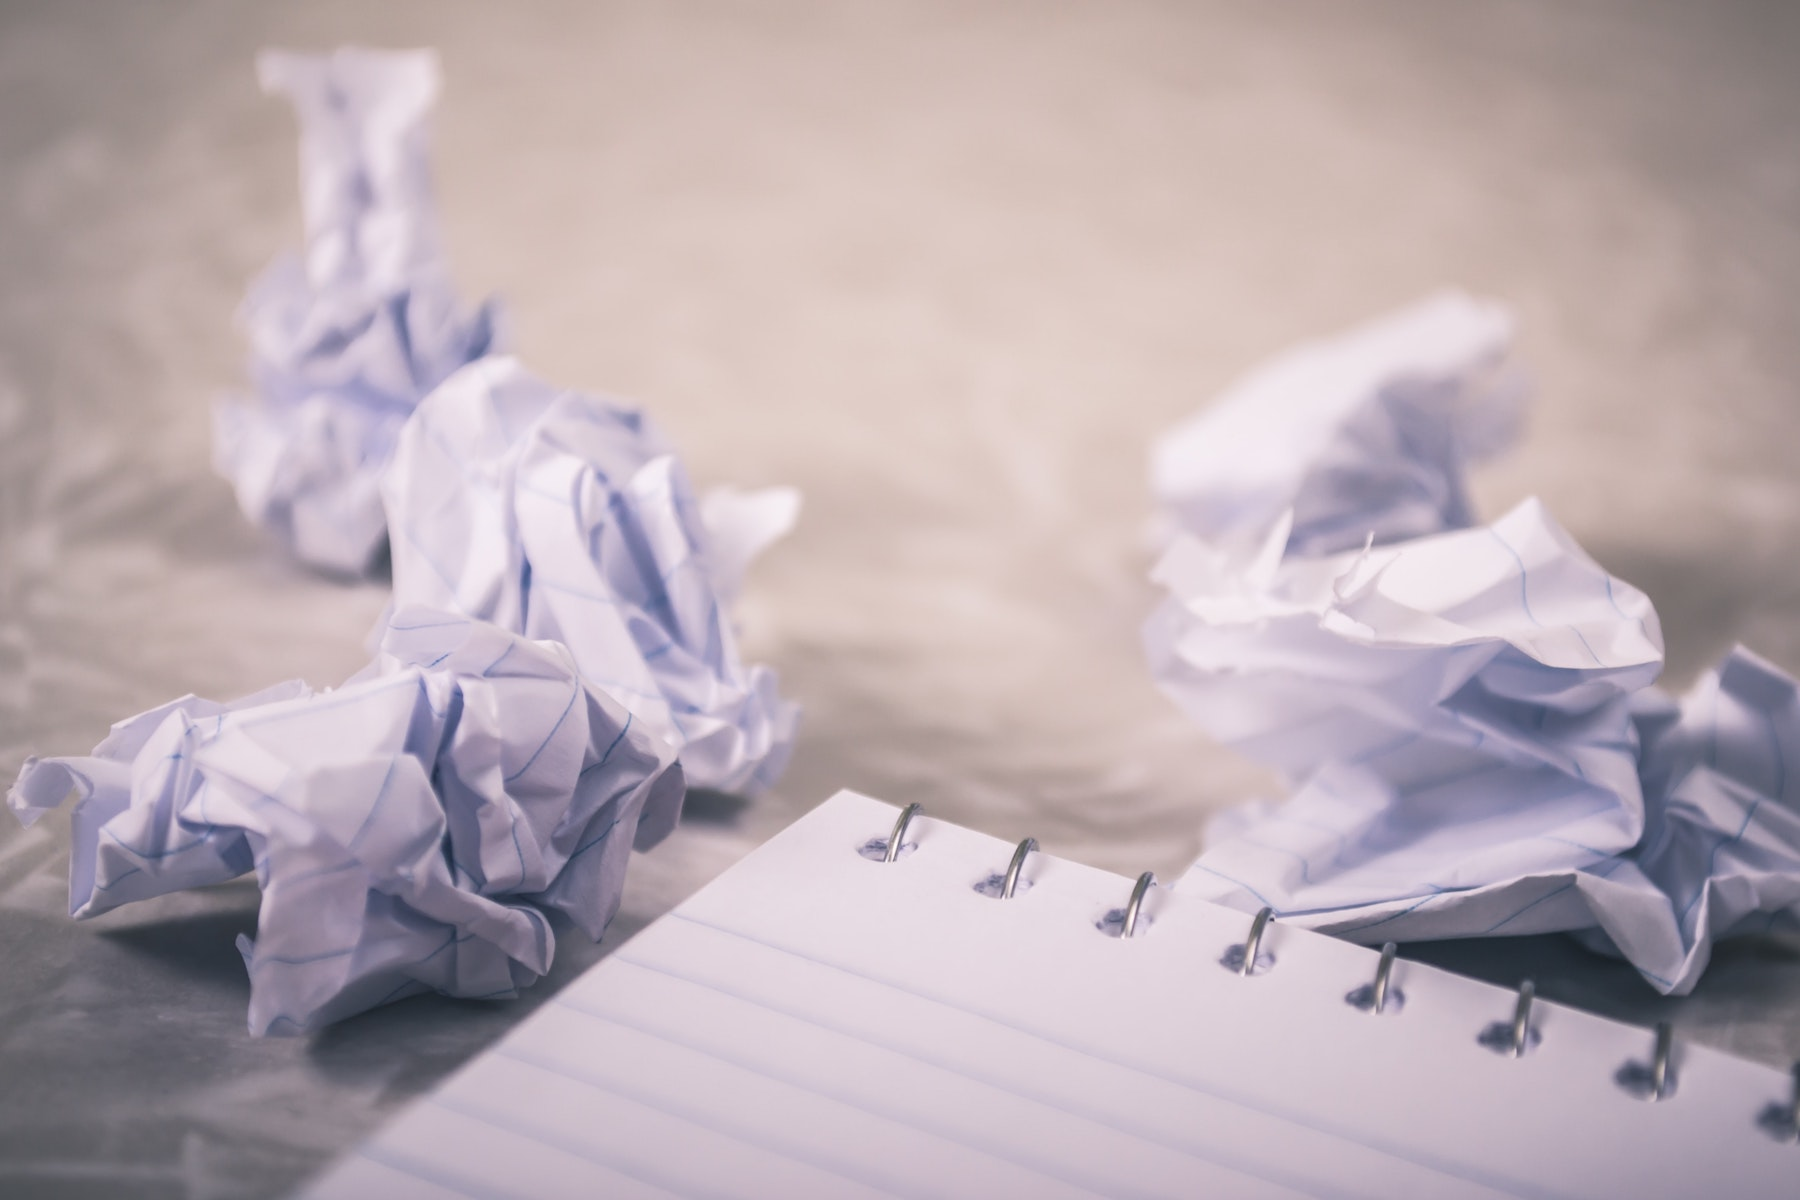 8 Blog Post Ideas That You Can Write in 30 Minutes or Less